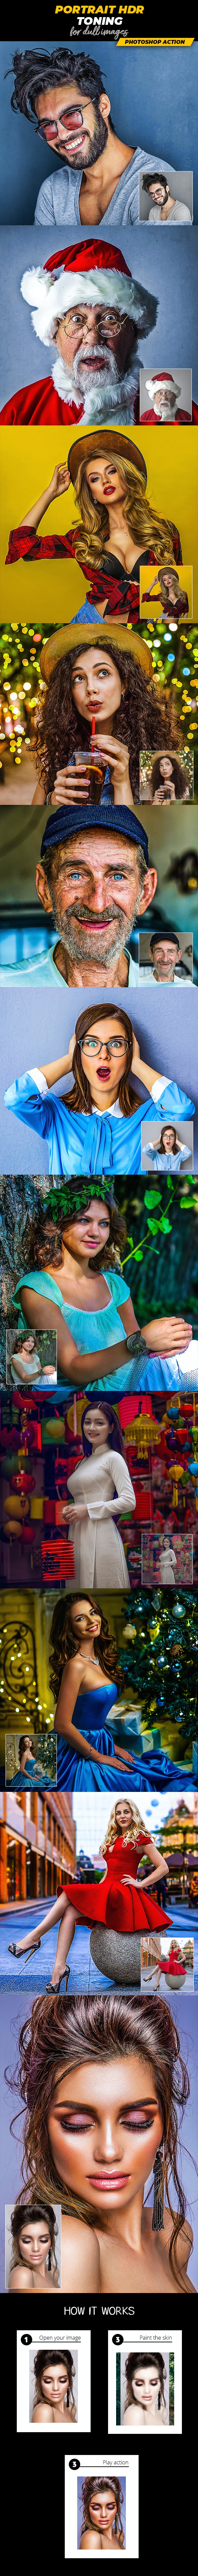 Portrait HDR Toning - Photoshop Action - Photo Effects Actions